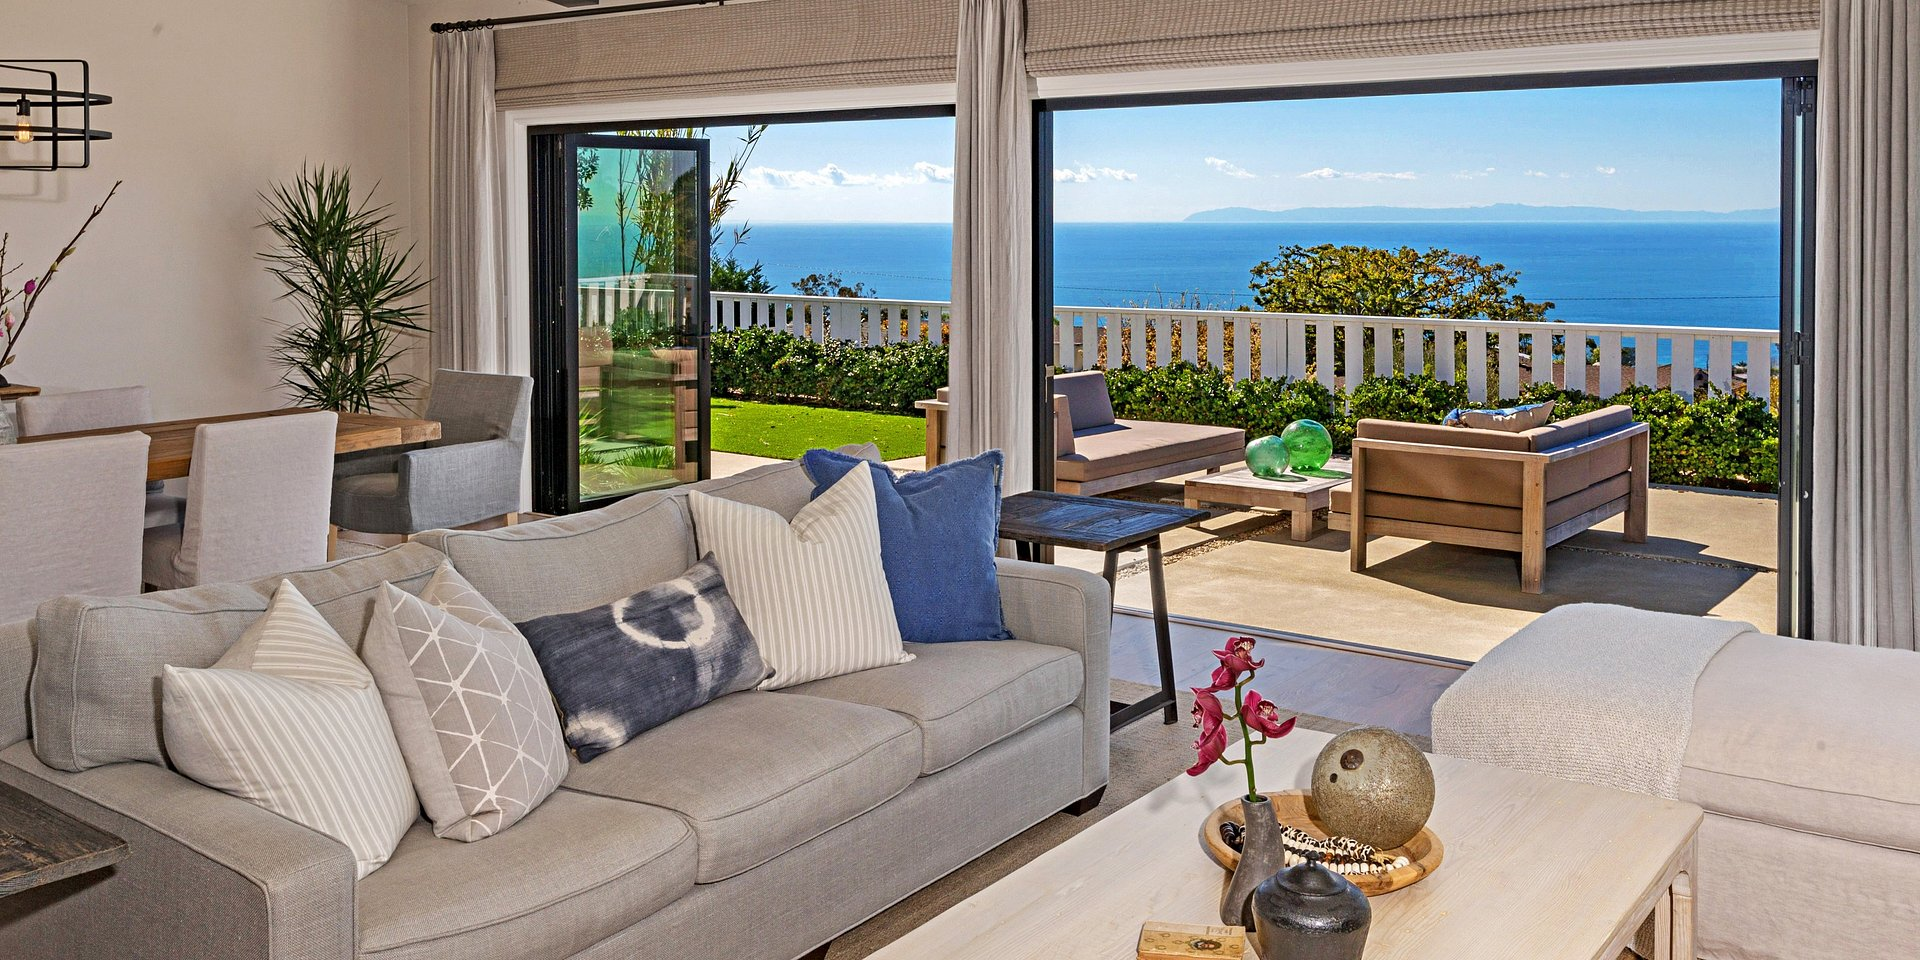 Coldwell Banker Residential Brokerage Lists Laguna Beach Property for $3.295 Million